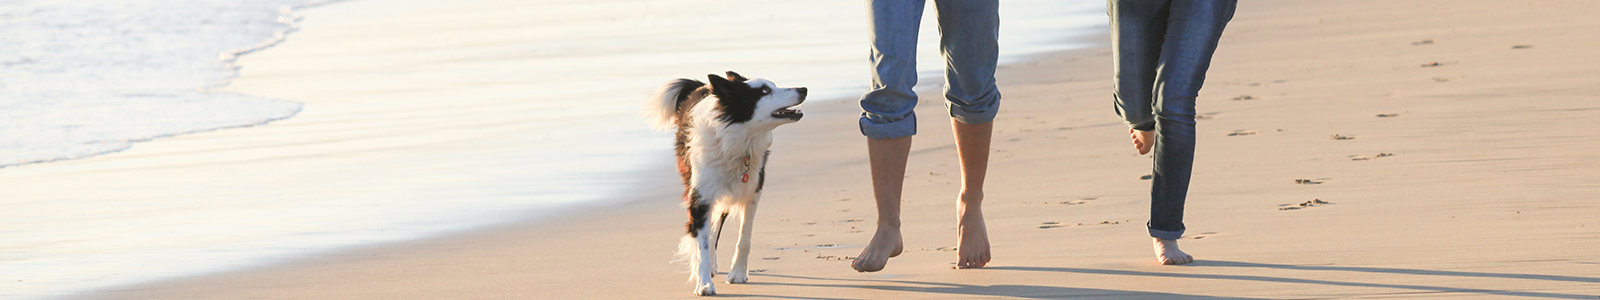 Find the perfect dog walk on your journey - Driving with Dogs